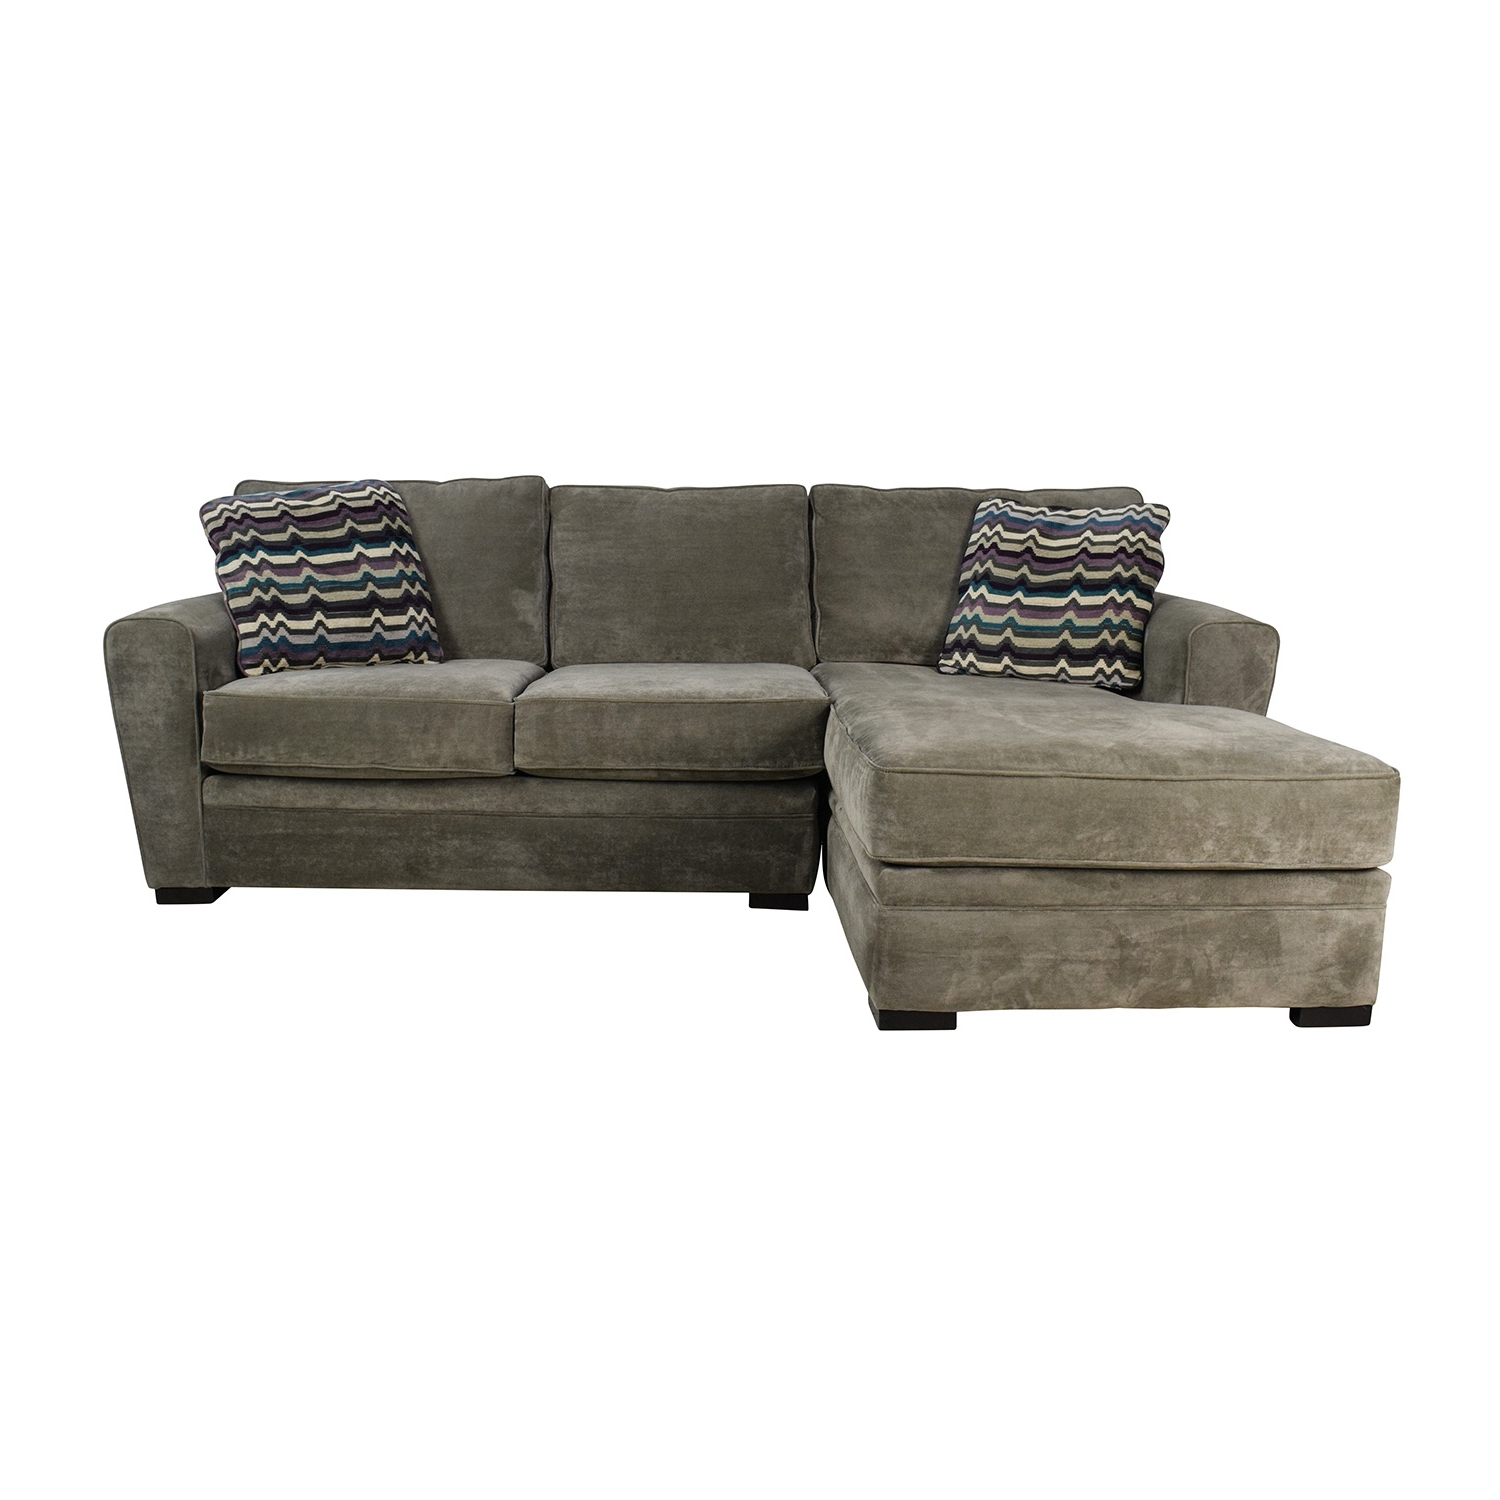 [%52% Off – Raymour & Flanigan Raymour & Flanigan Artemis Ii With Regard To Favorite Raymour And Flanigan Sectional Sofas|raymour And Flanigan Sectional Sofas Pertaining To Favorite 52% Off – Raymour & Flanigan Raymour & Flanigan Artemis Ii|preferred Raymour And Flanigan Sectional Sofas Inside 52% Off – Raymour & Flanigan Raymour & Flanigan Artemis Ii|best And Newest 52% Off – Raymour & Flanigan Raymour & Flanigan Artemis Ii Intended For Raymour And Flanigan Sectional Sofas%] (View 4 of 20)